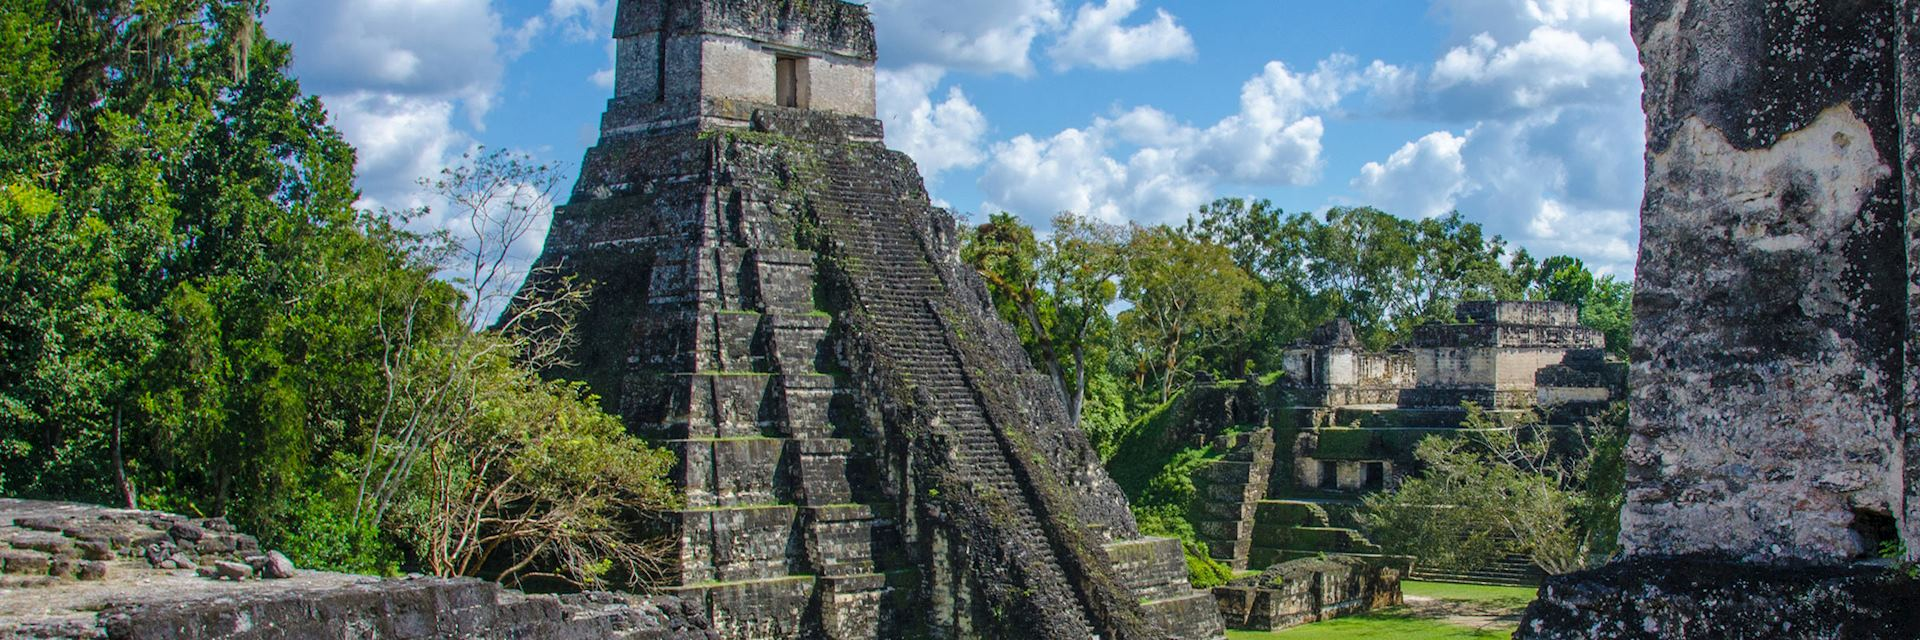 Tikal ruins and pyramids, Belize